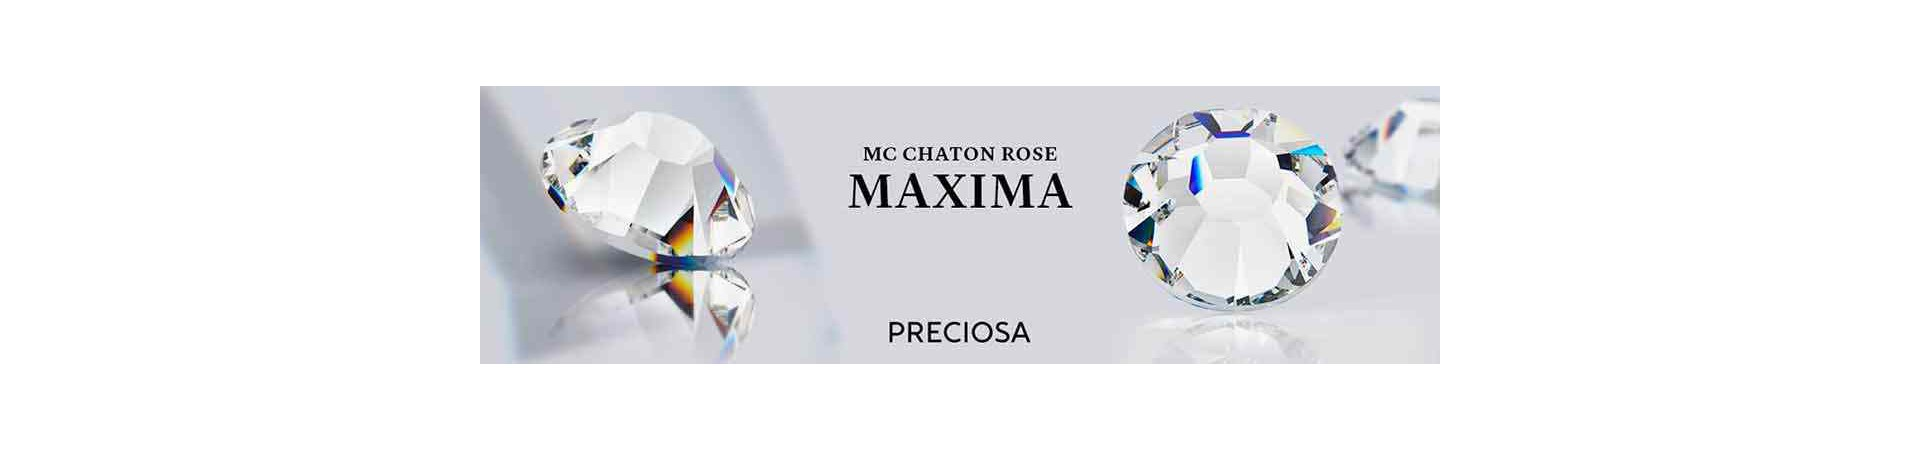 MAXIMA by PRECIOSA® Crystal AB MC Chaton Rose Lead-Free Brilliance